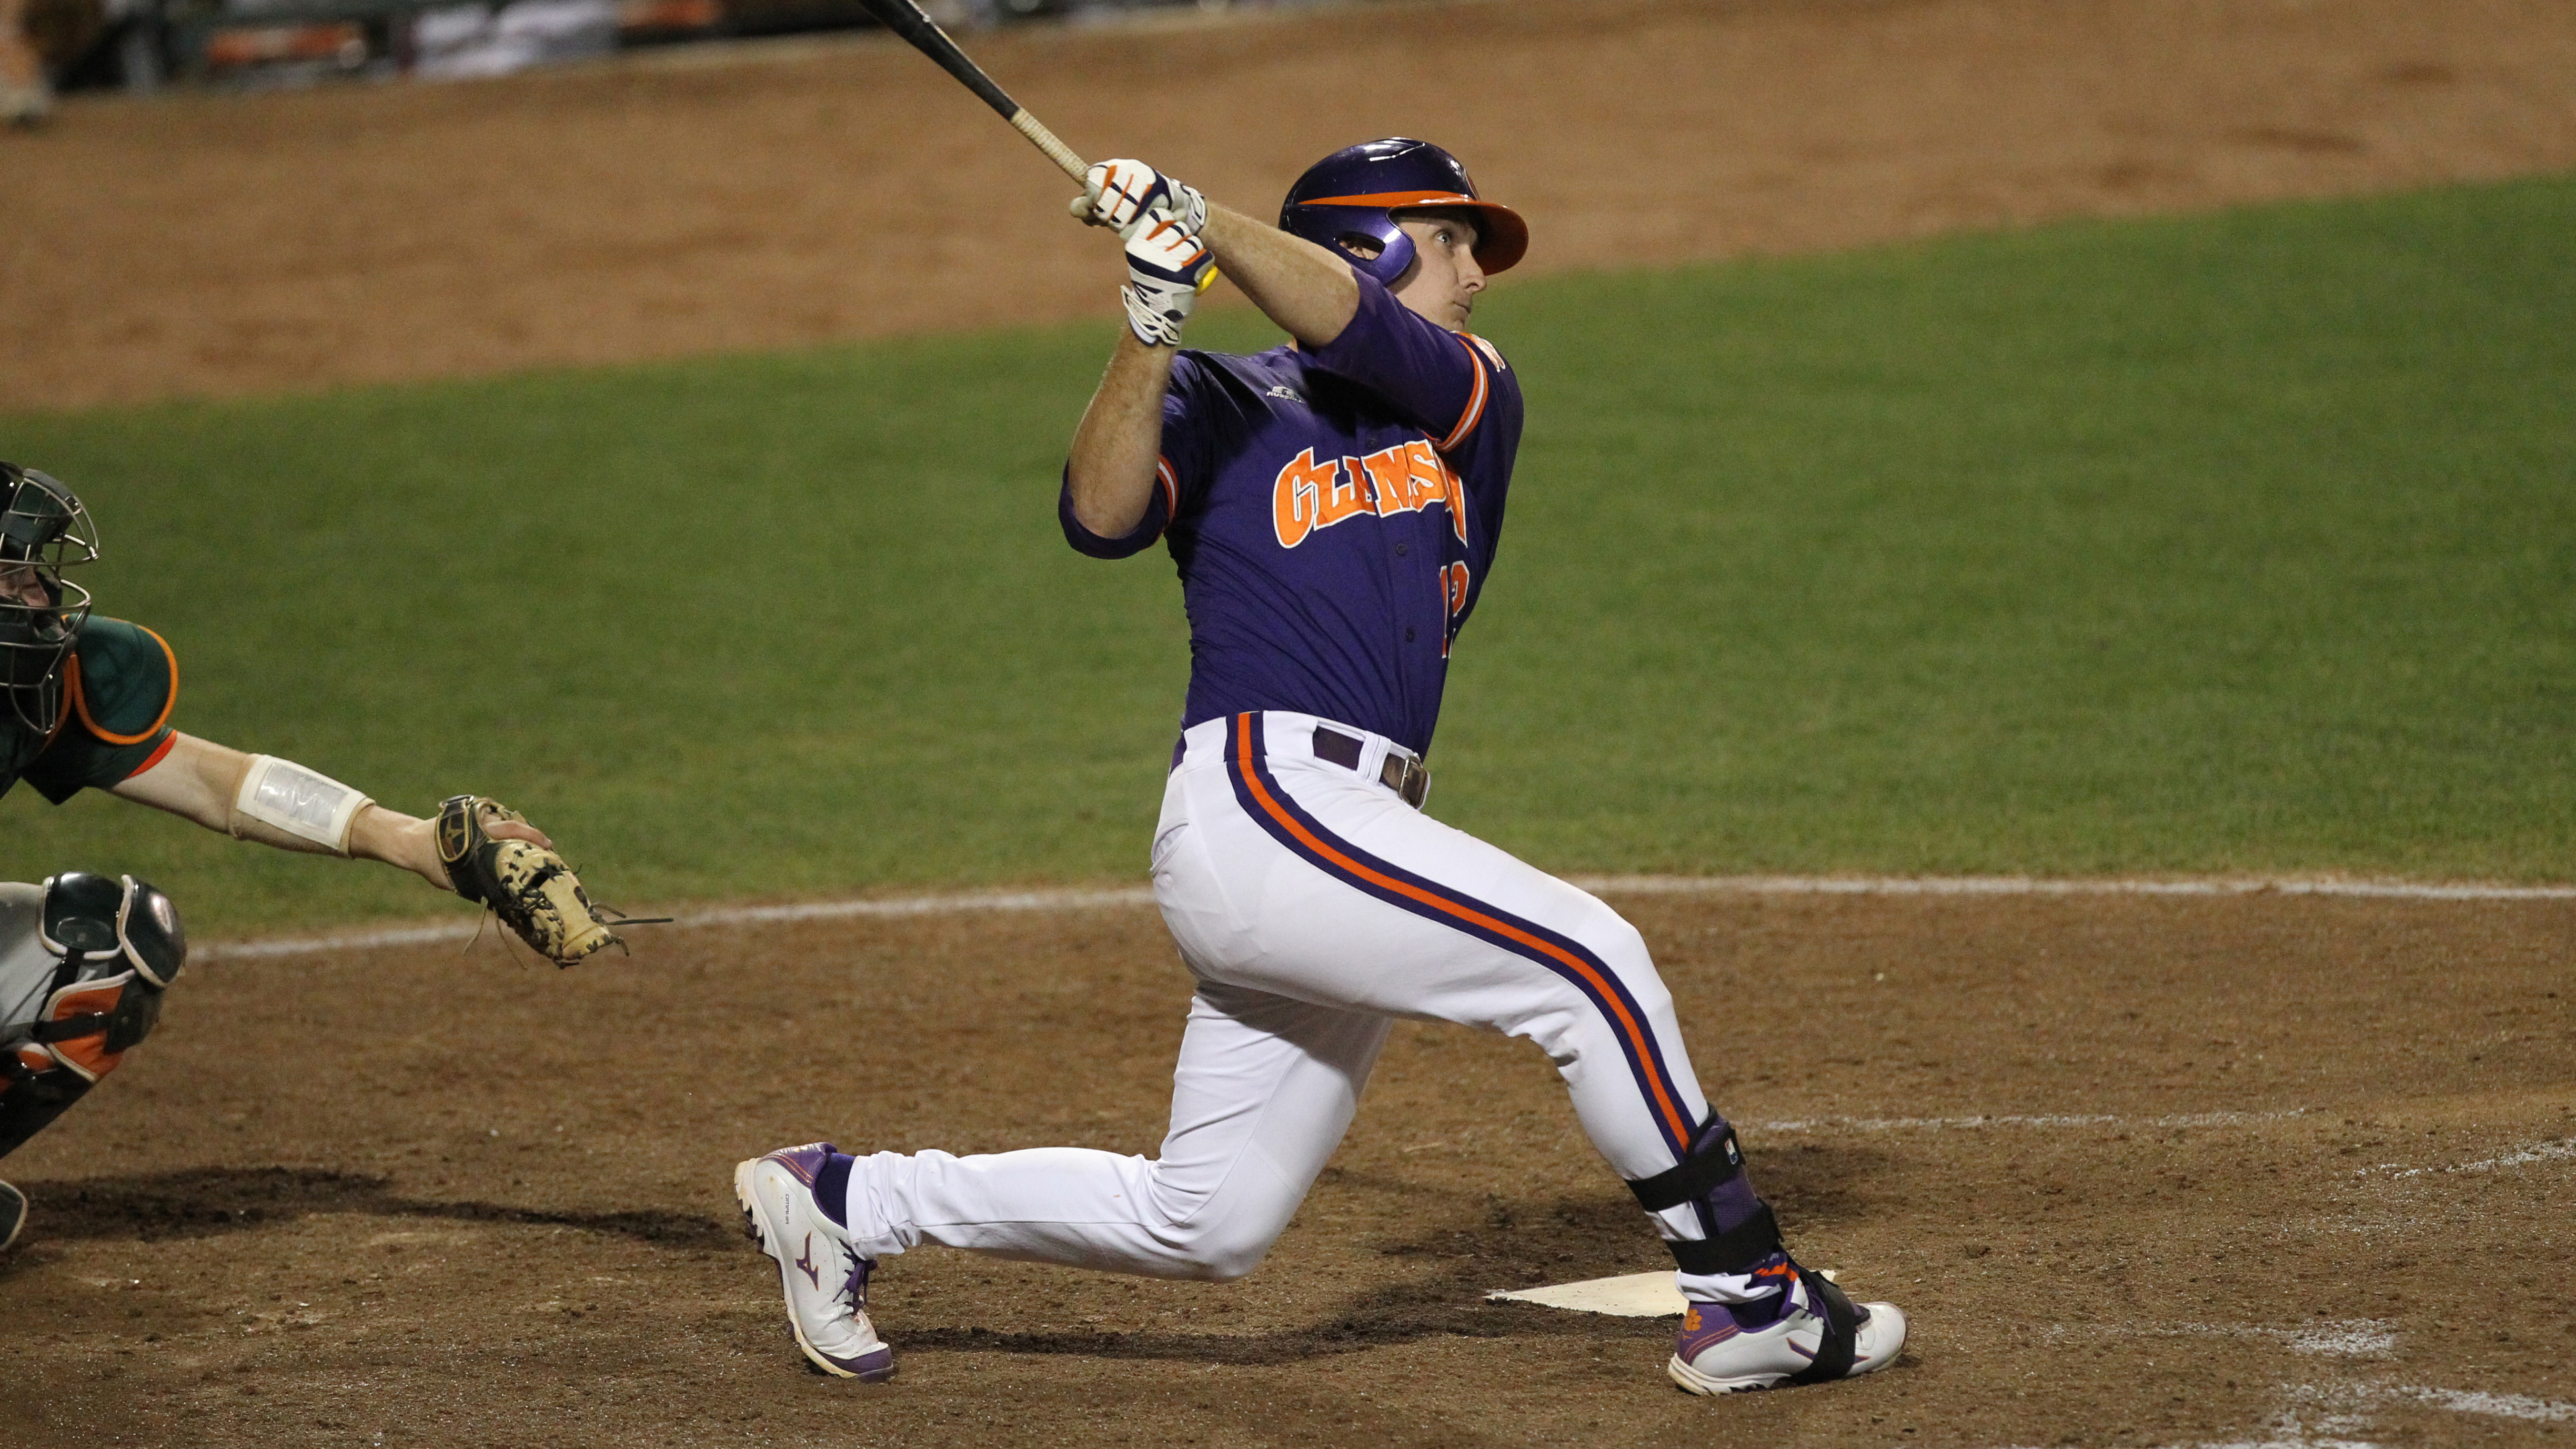 Tigers Walk Off With 3-2 Win Over No. 3 Miami (Fla.) in ACC Tourney on Thursday